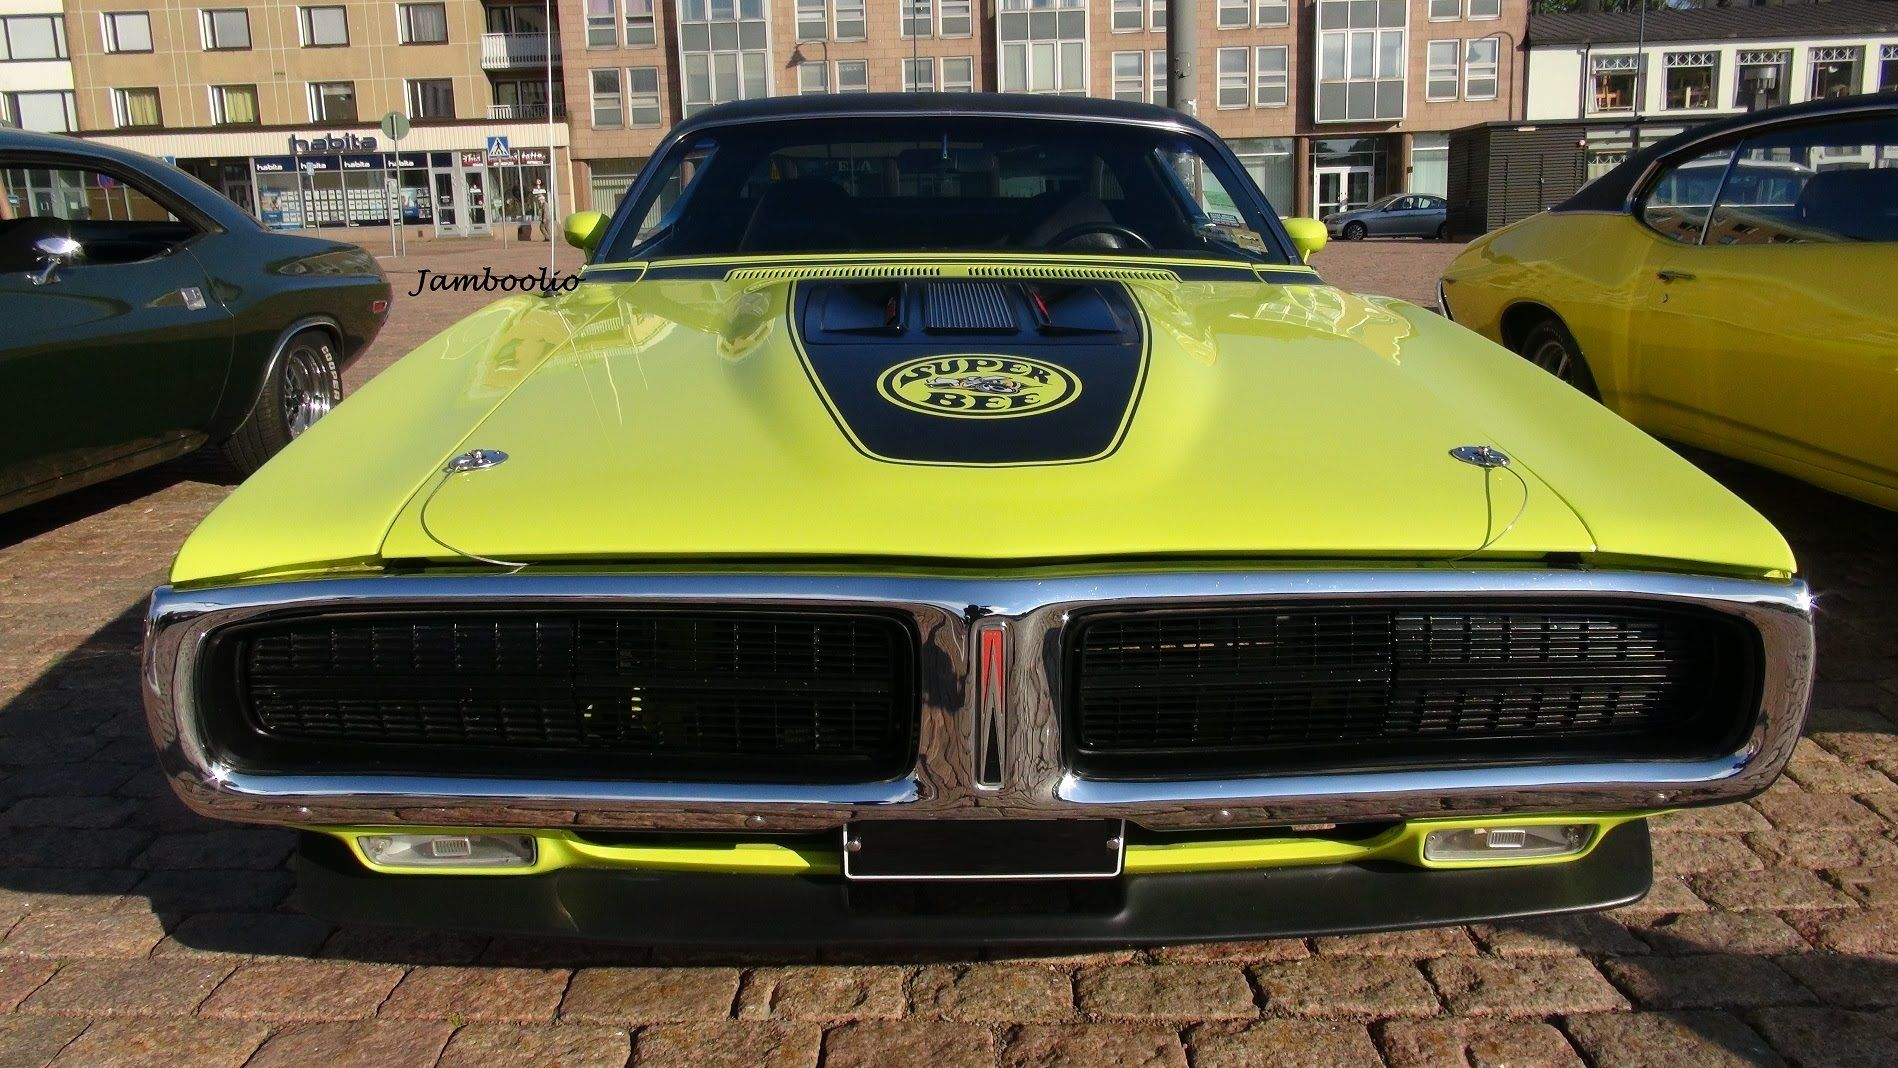 1971 dodge charger super bee 440 six pack superb exhaust sound